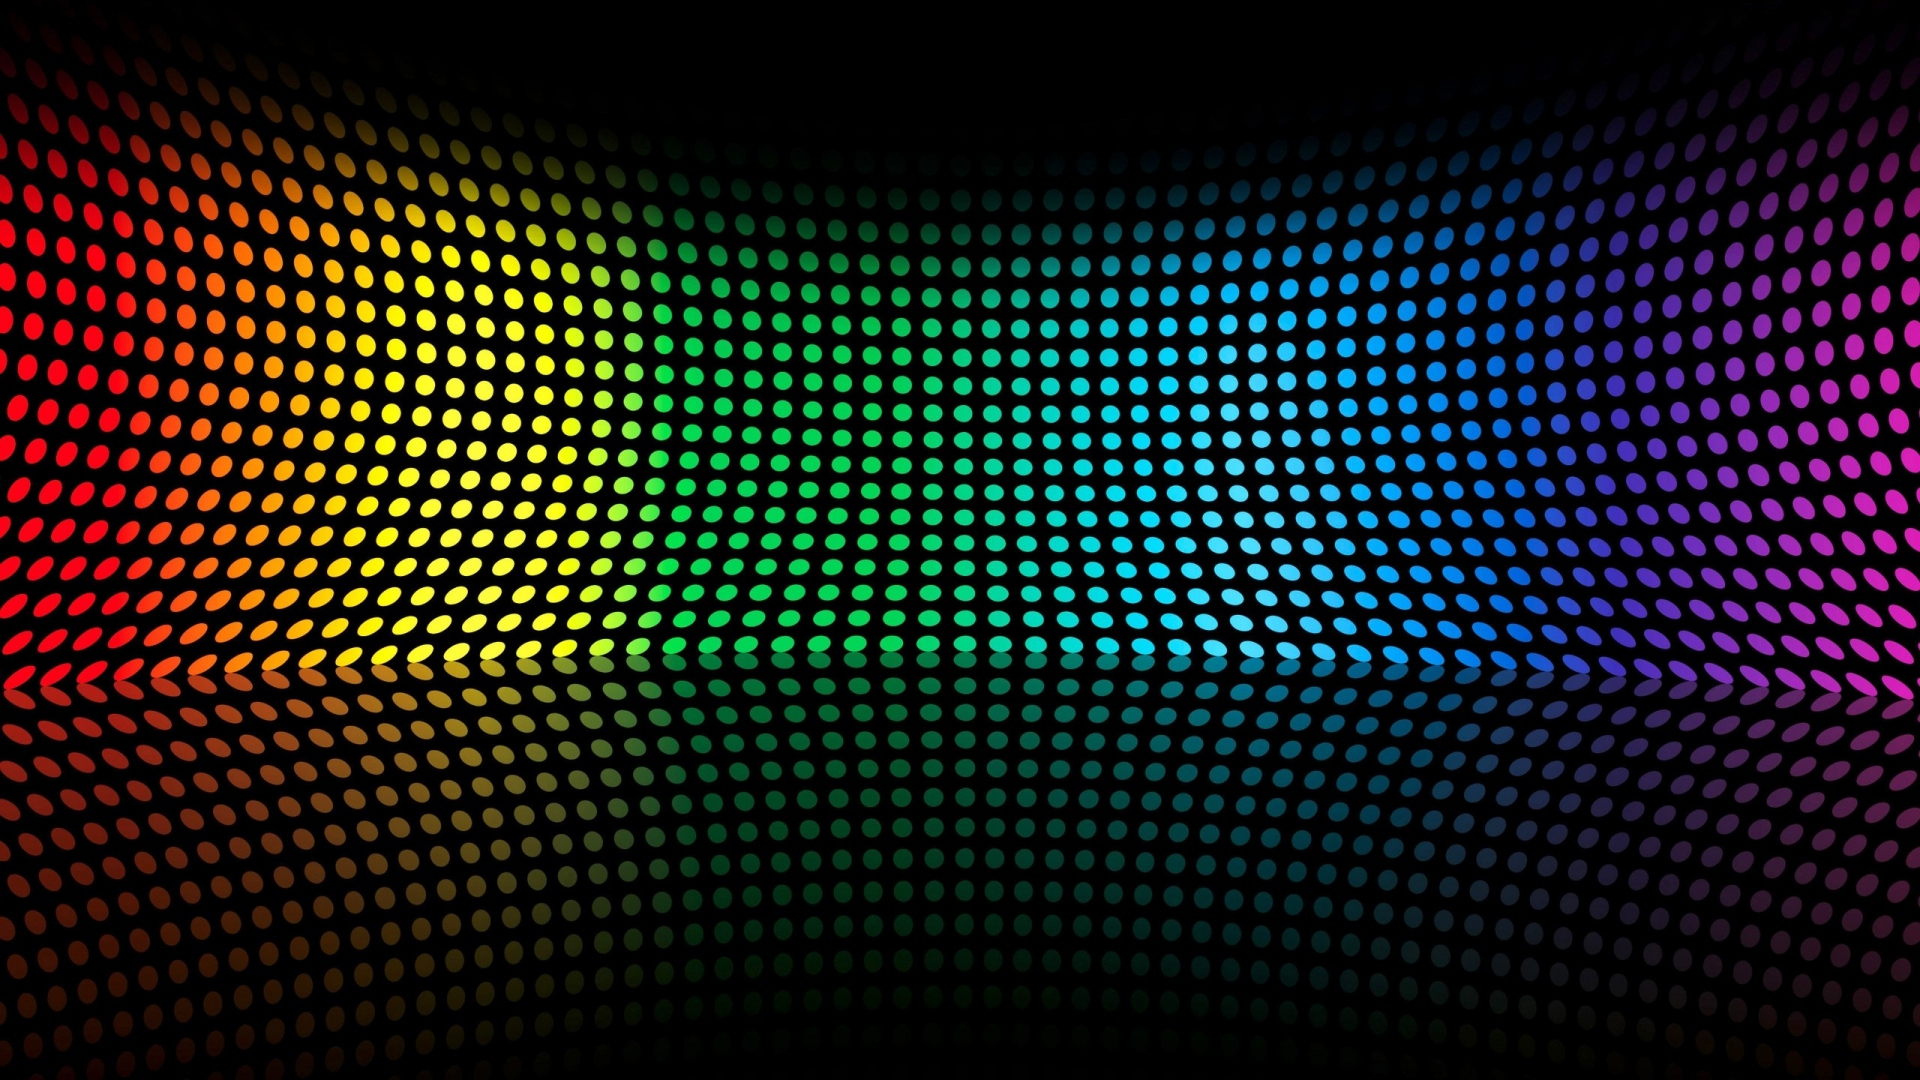 HD Background Colorful Curved Disco Light Bending Pattern Wallpaper 1920x1080